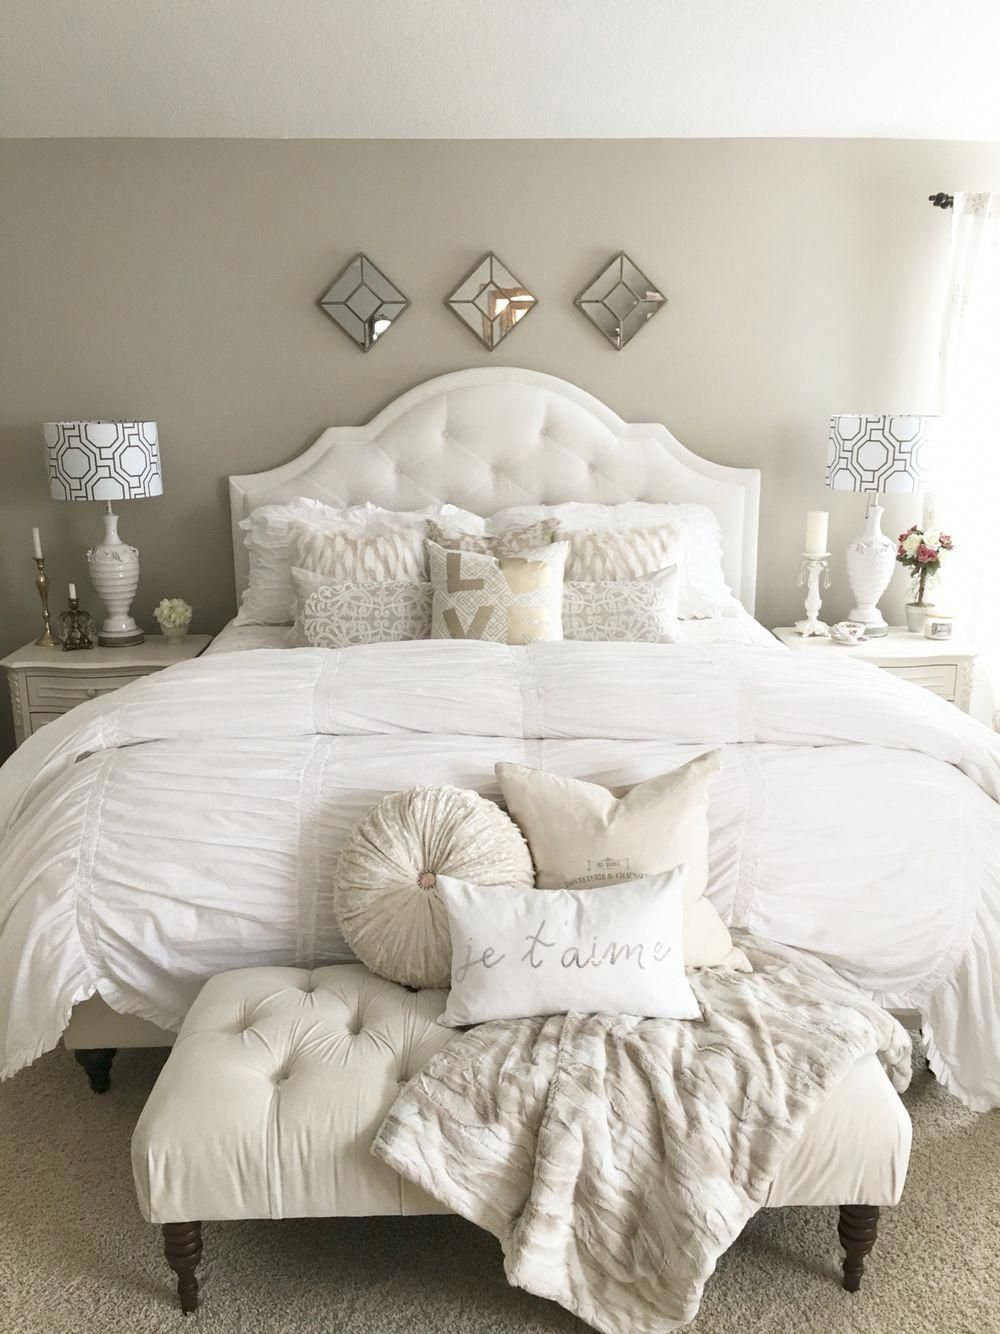 Elegant Romantic Bedrooms: Romantic Elegant French Country Bedroom. Shabby Chic White